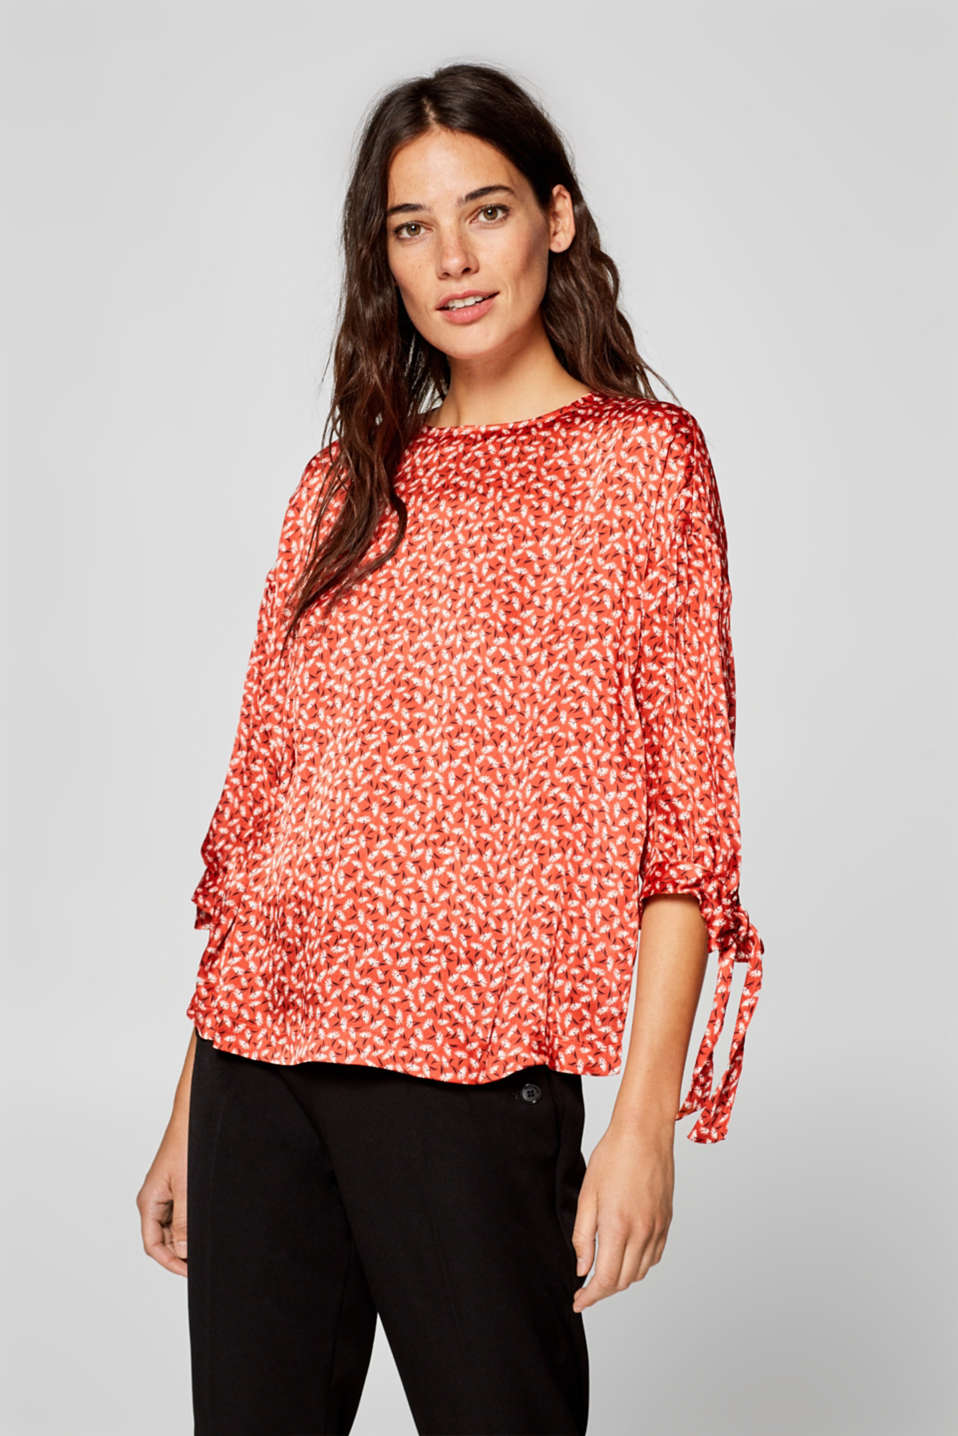 Esprit - Printed blouse with bow sleeves